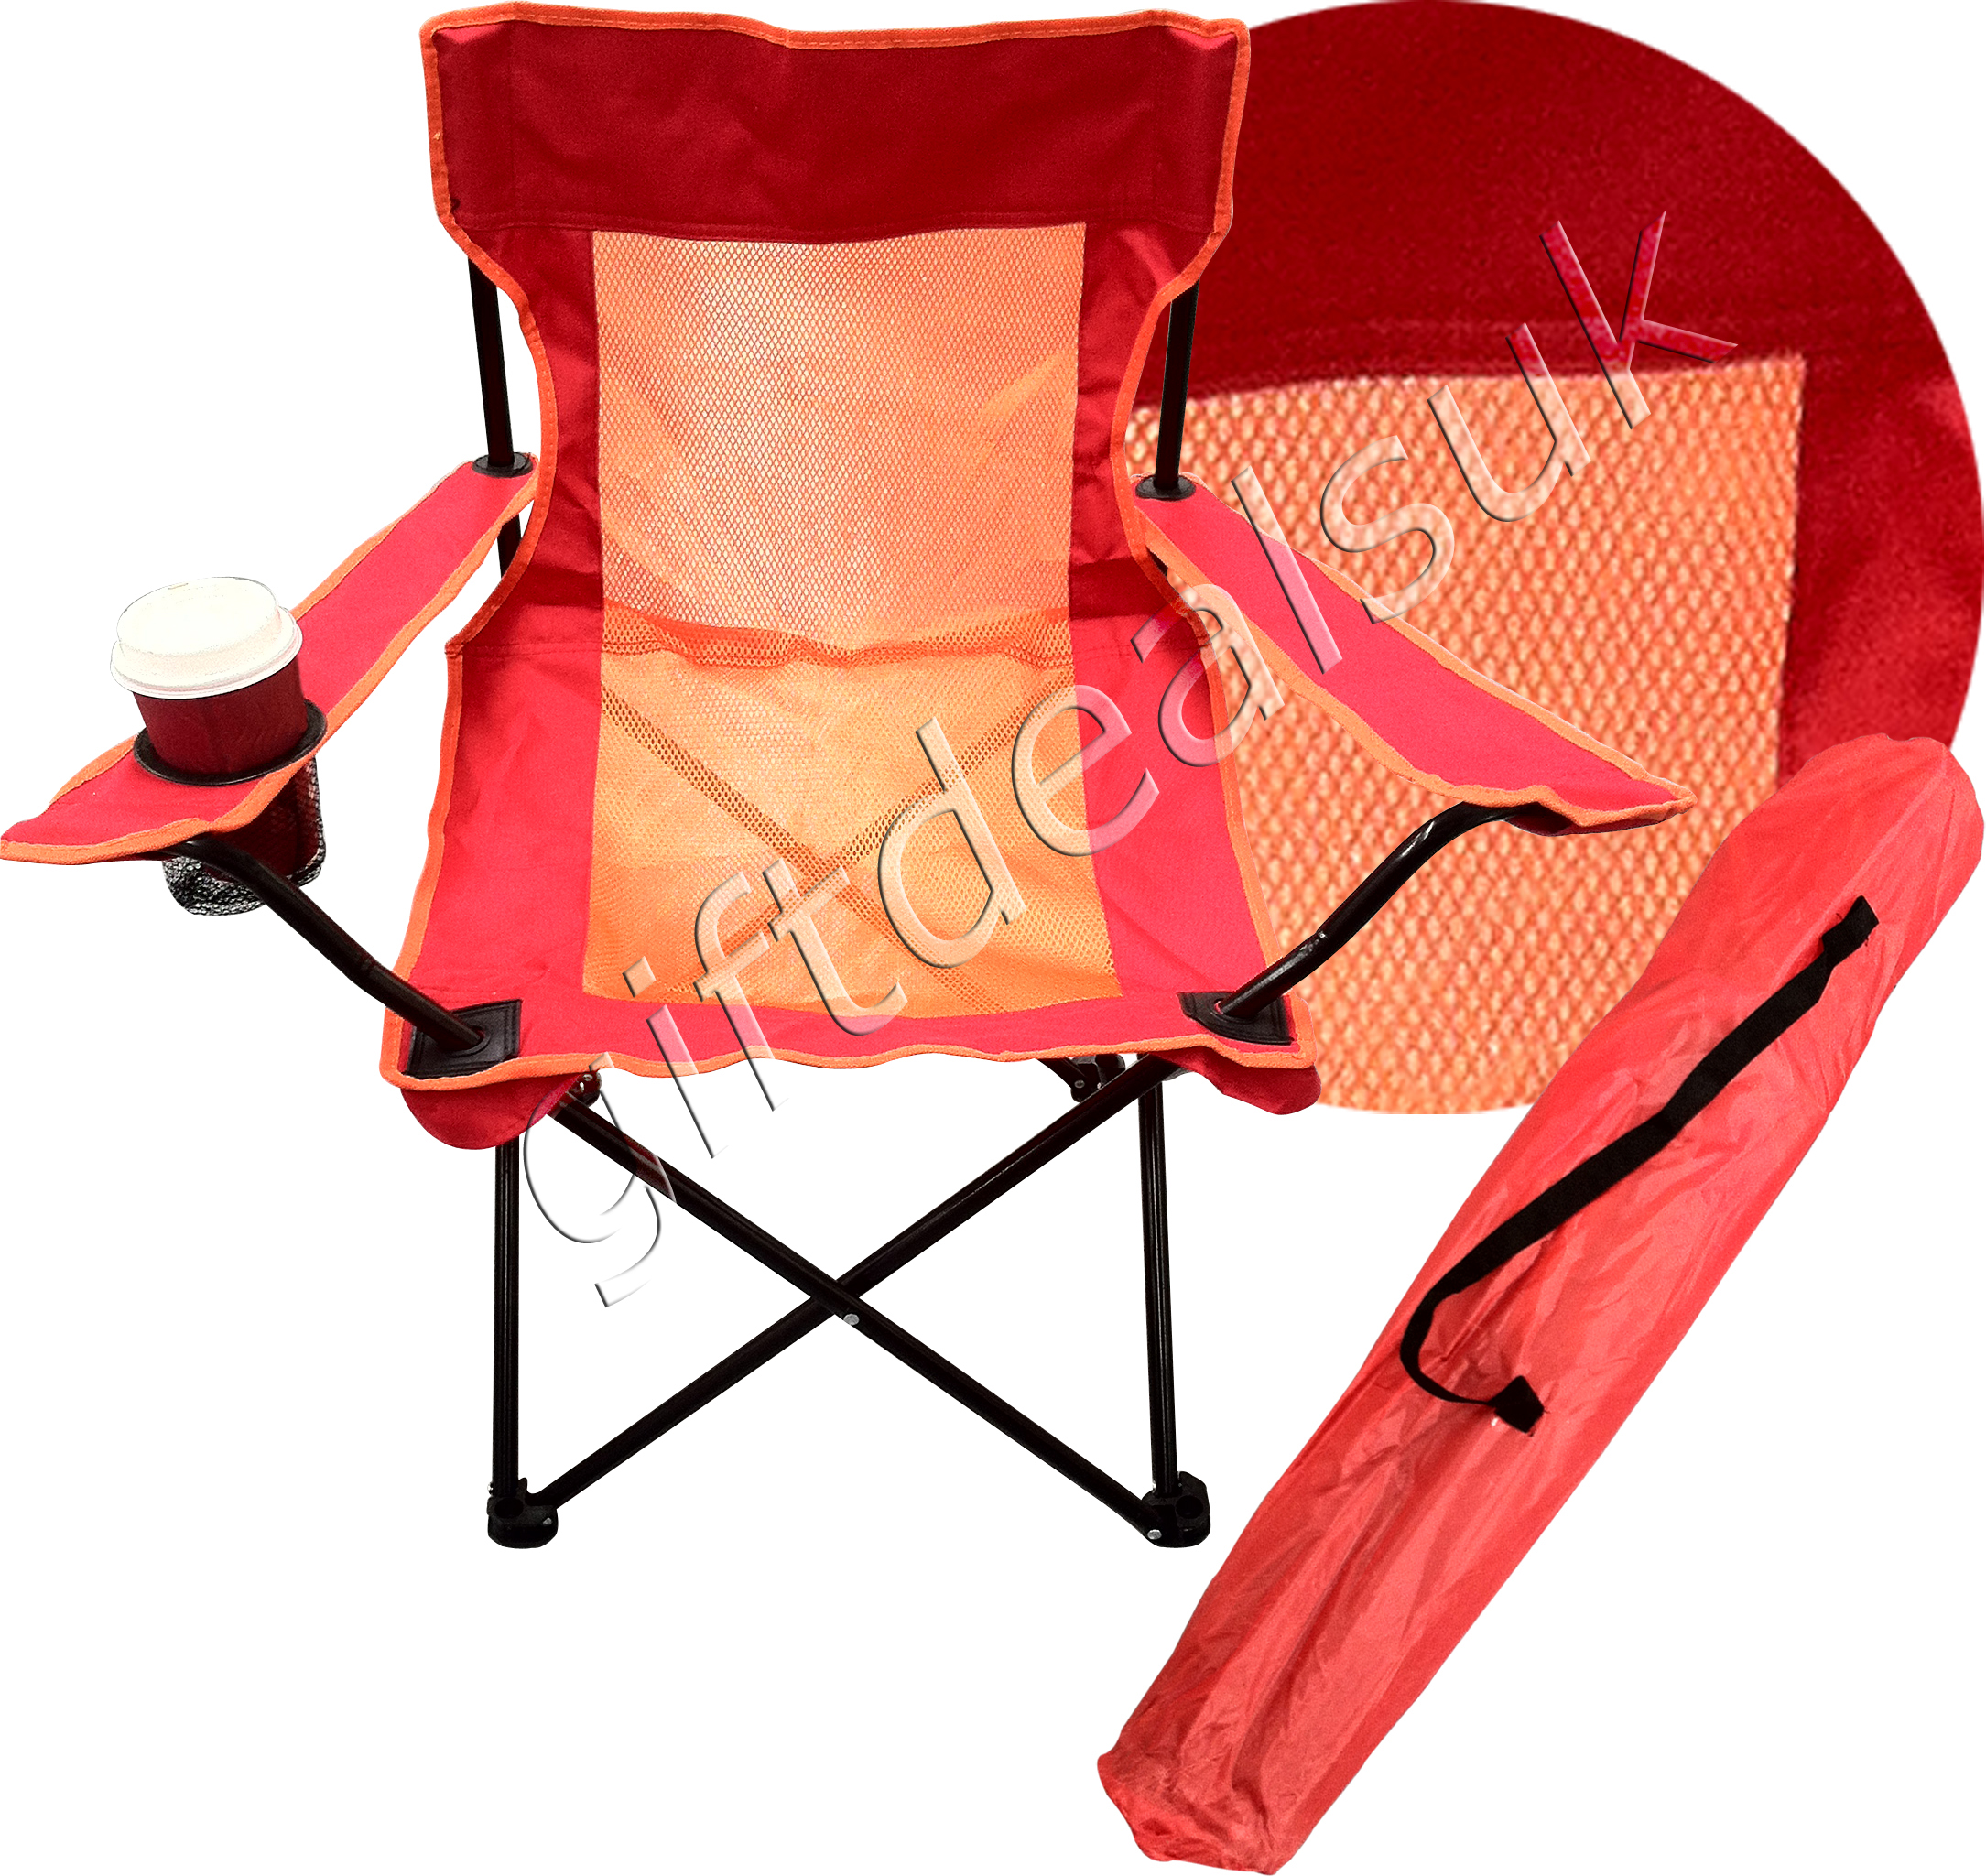 PORTABLE FOLDING CAMPING DIRECTORS CHAIR CUP HOLDER 4 COLOUR HEAVY DUTY CHAIR